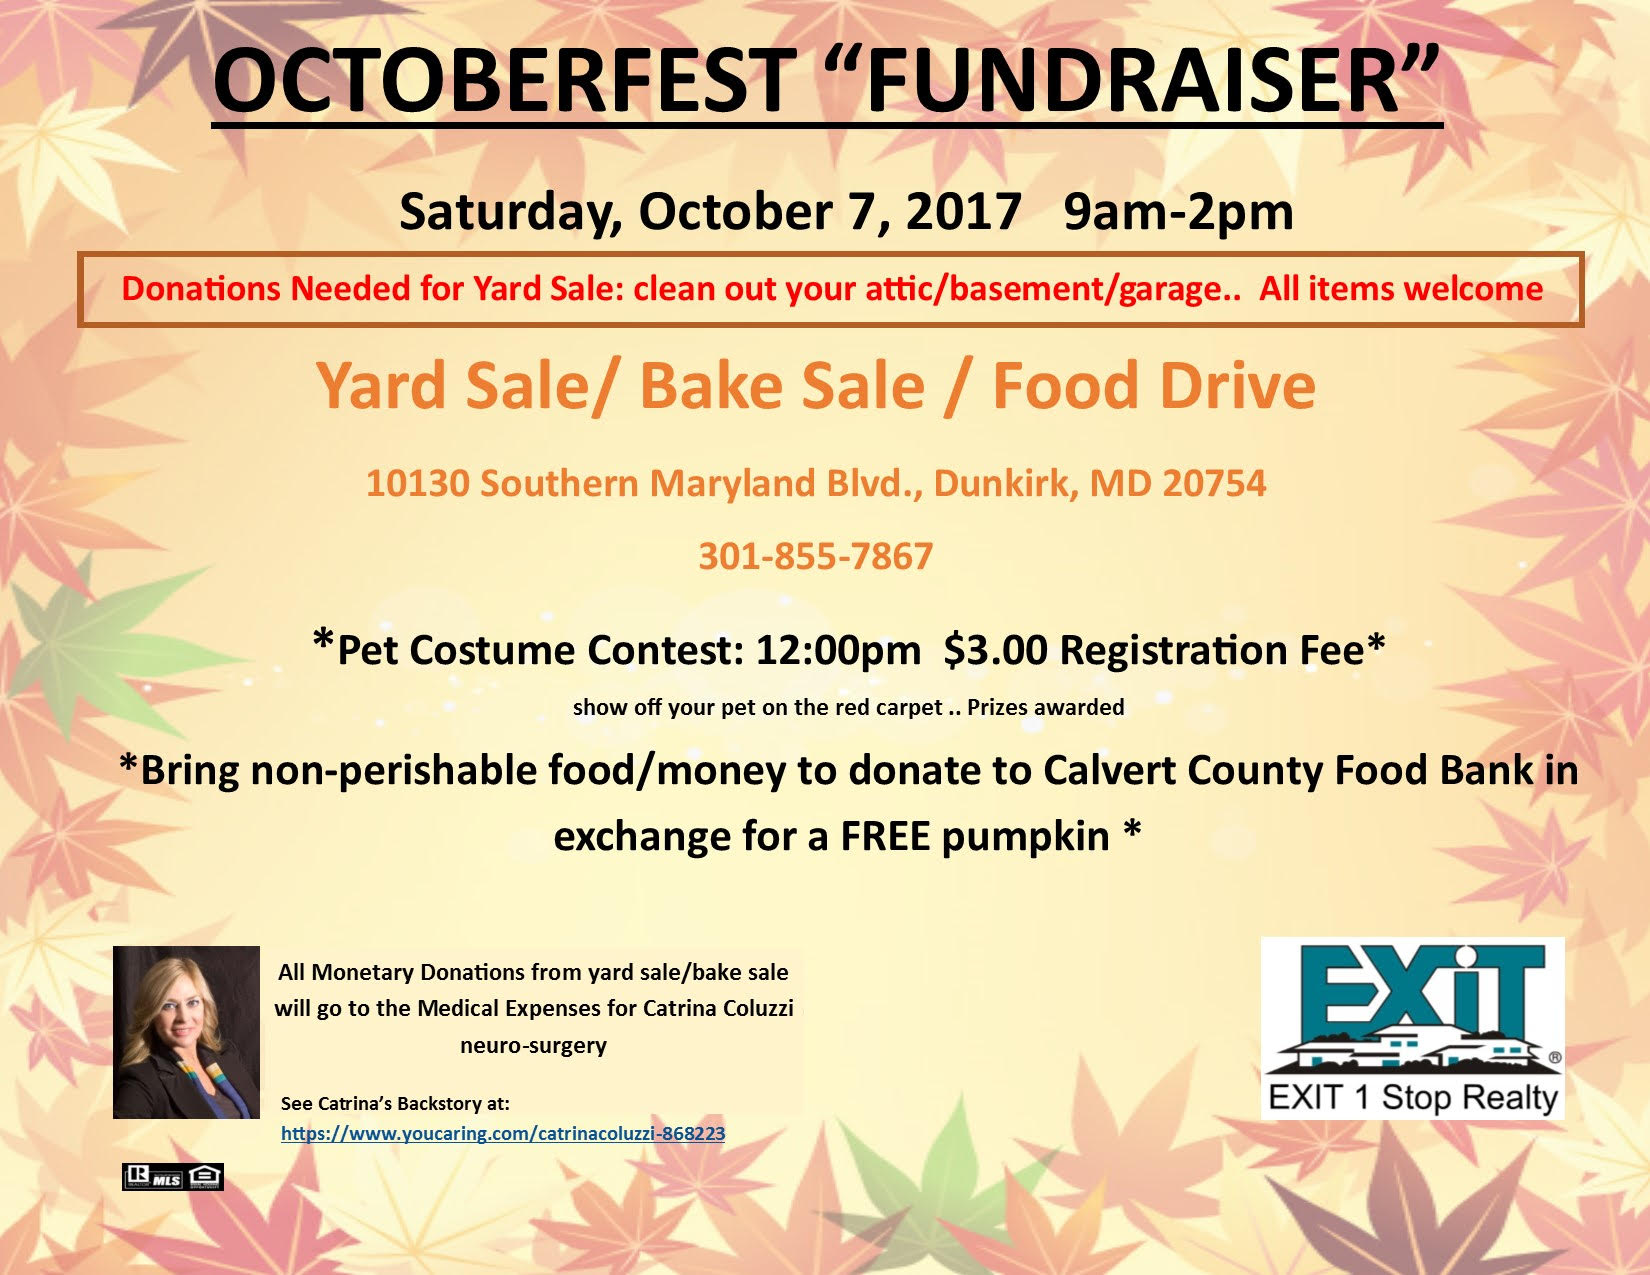 Octoberfest Yard Sale & Pet Costume Contest hosted by Exit 1 Stop Realty